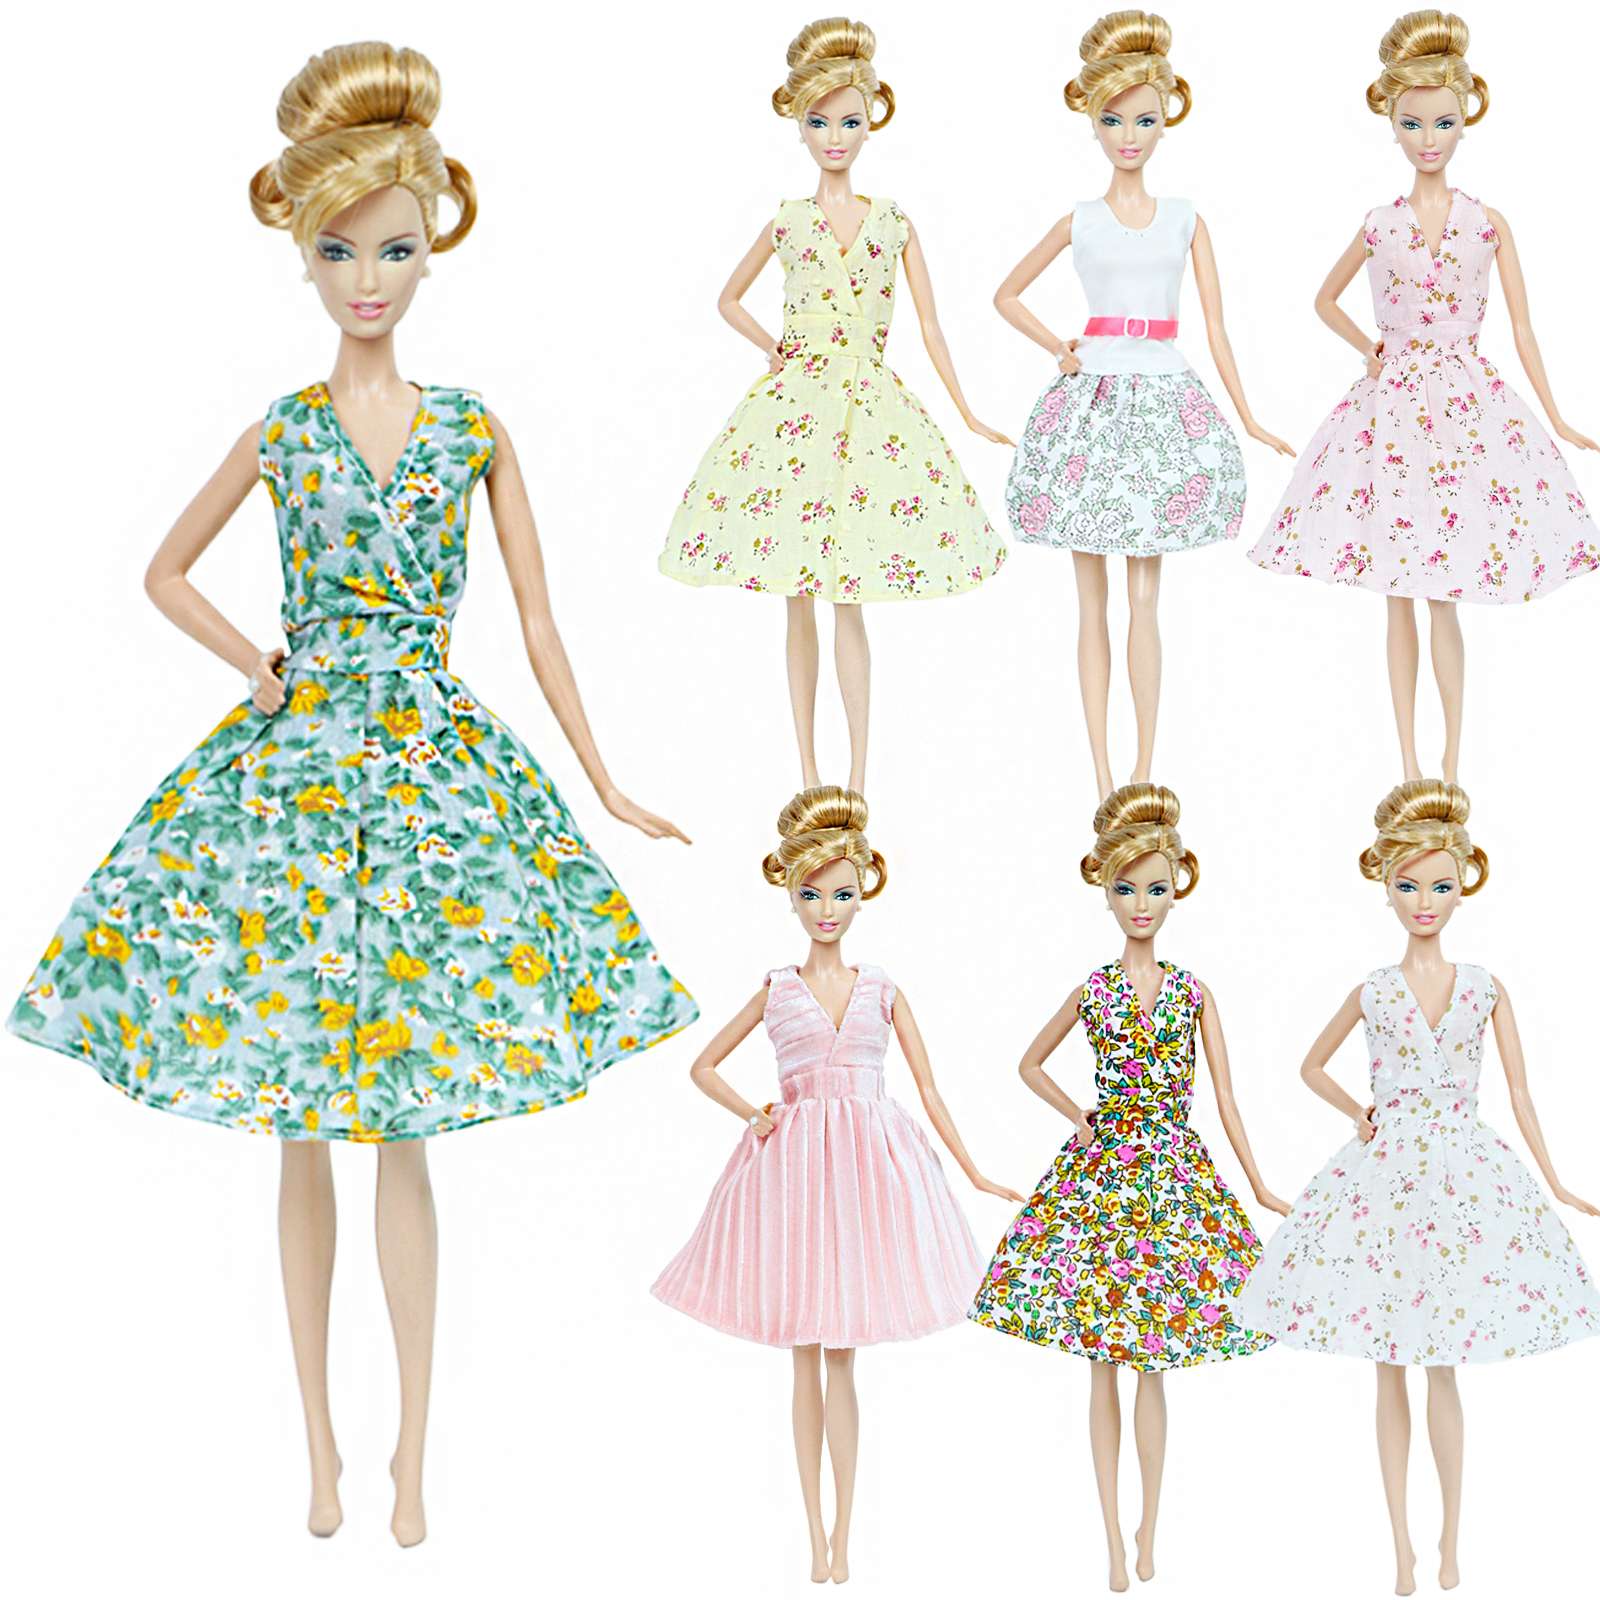 1 Pcs High Quality Fashion Dress For Barbie Doll Daily Wear Garden Fllower Yellow Green Short Skirt Clothes Accessories Kids Toy